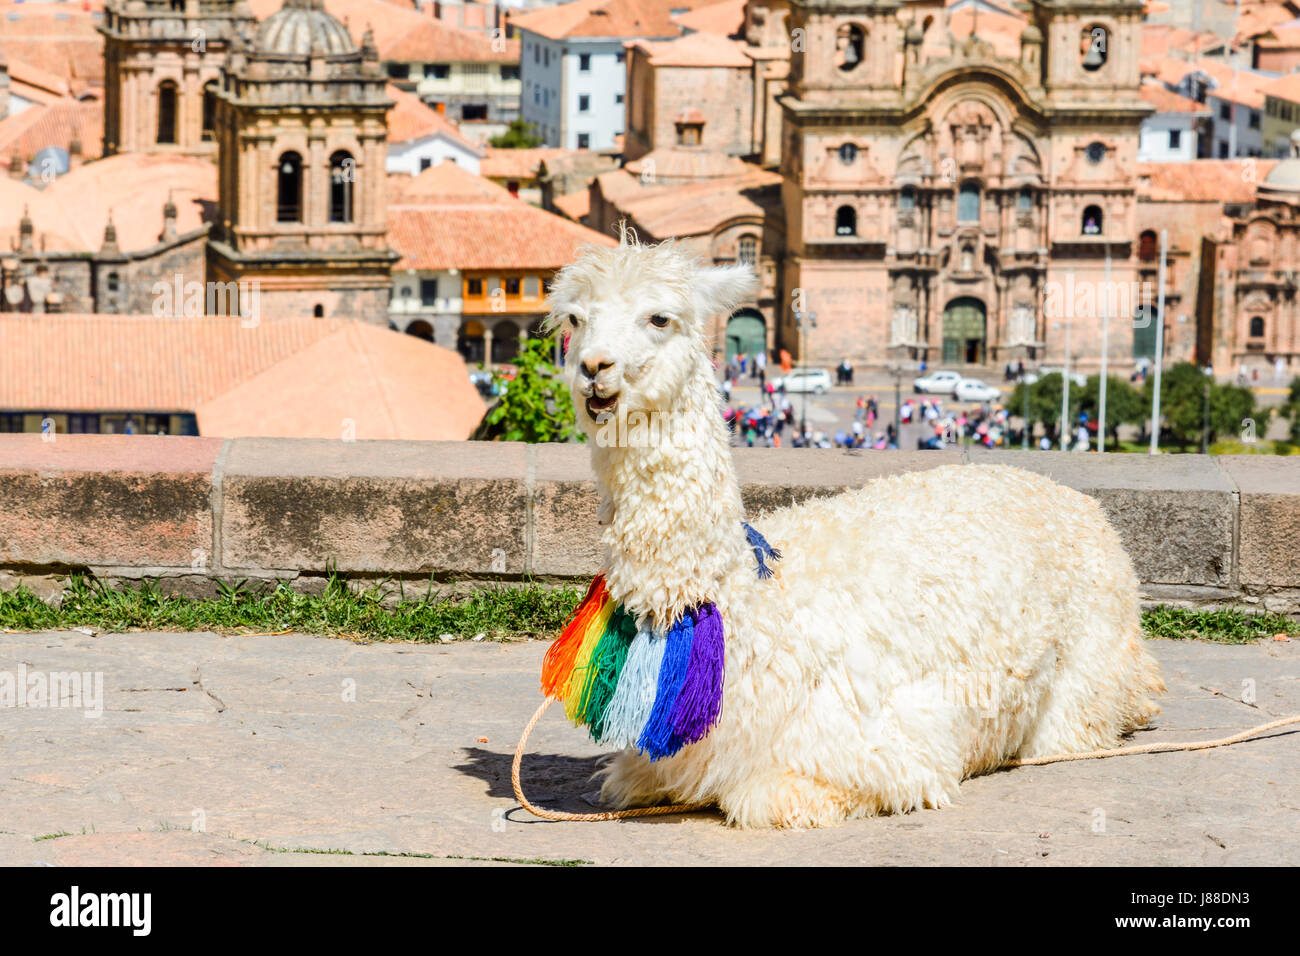 Sleeping Lama at the San Cristobal Church yard, Cusco, Peru - Stock Image